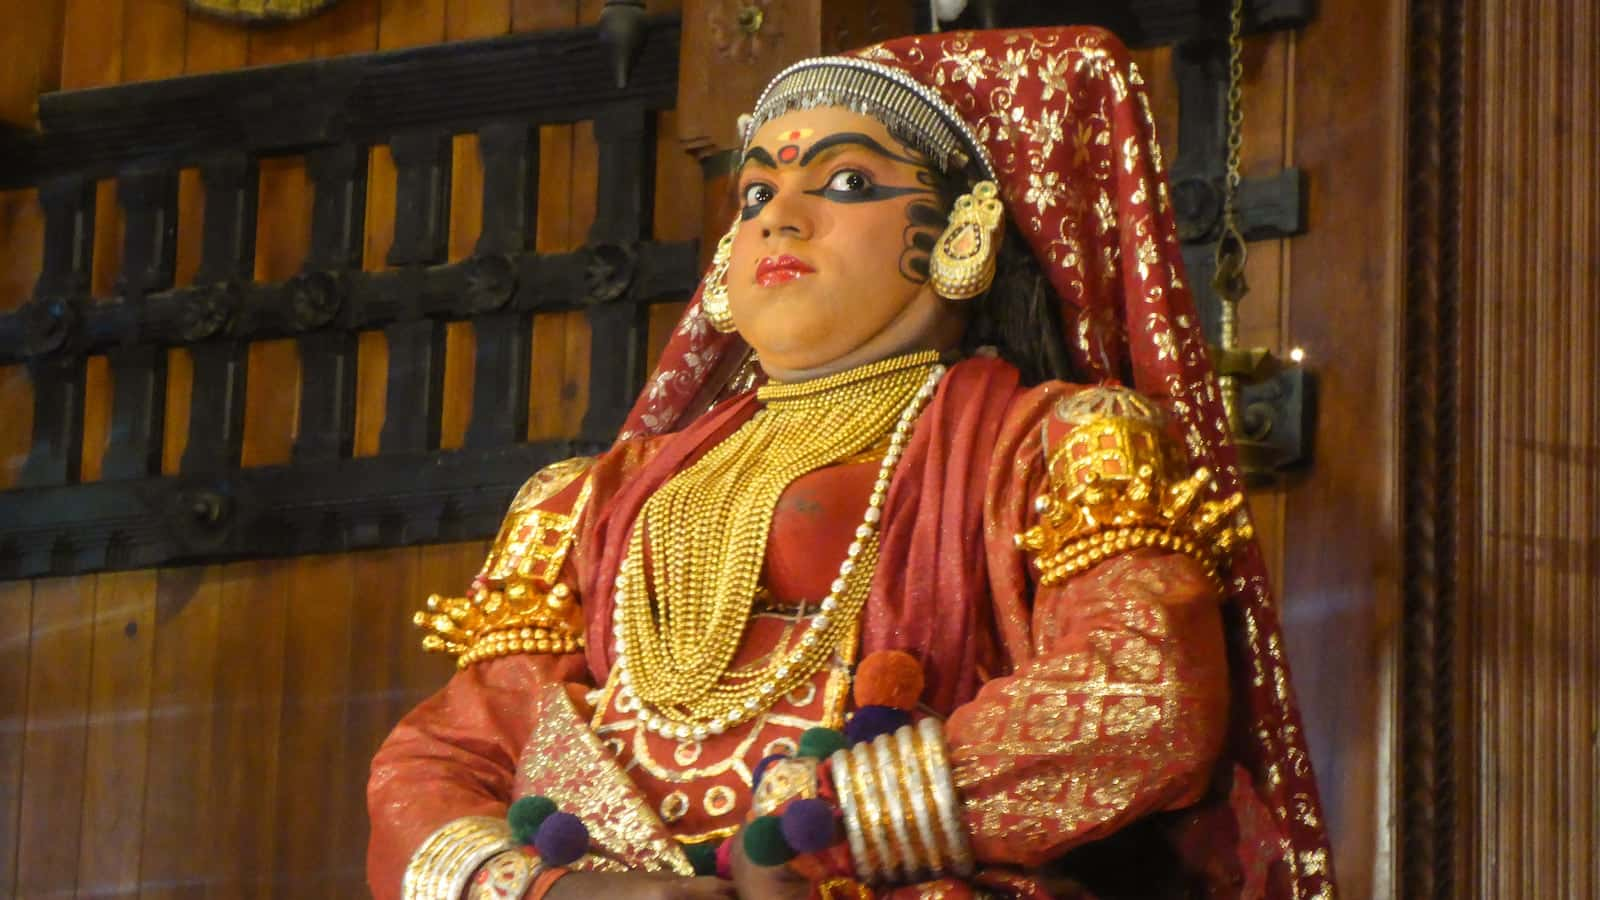 Kathakali dancer in Kochi during Gay Kerala Queer Pride